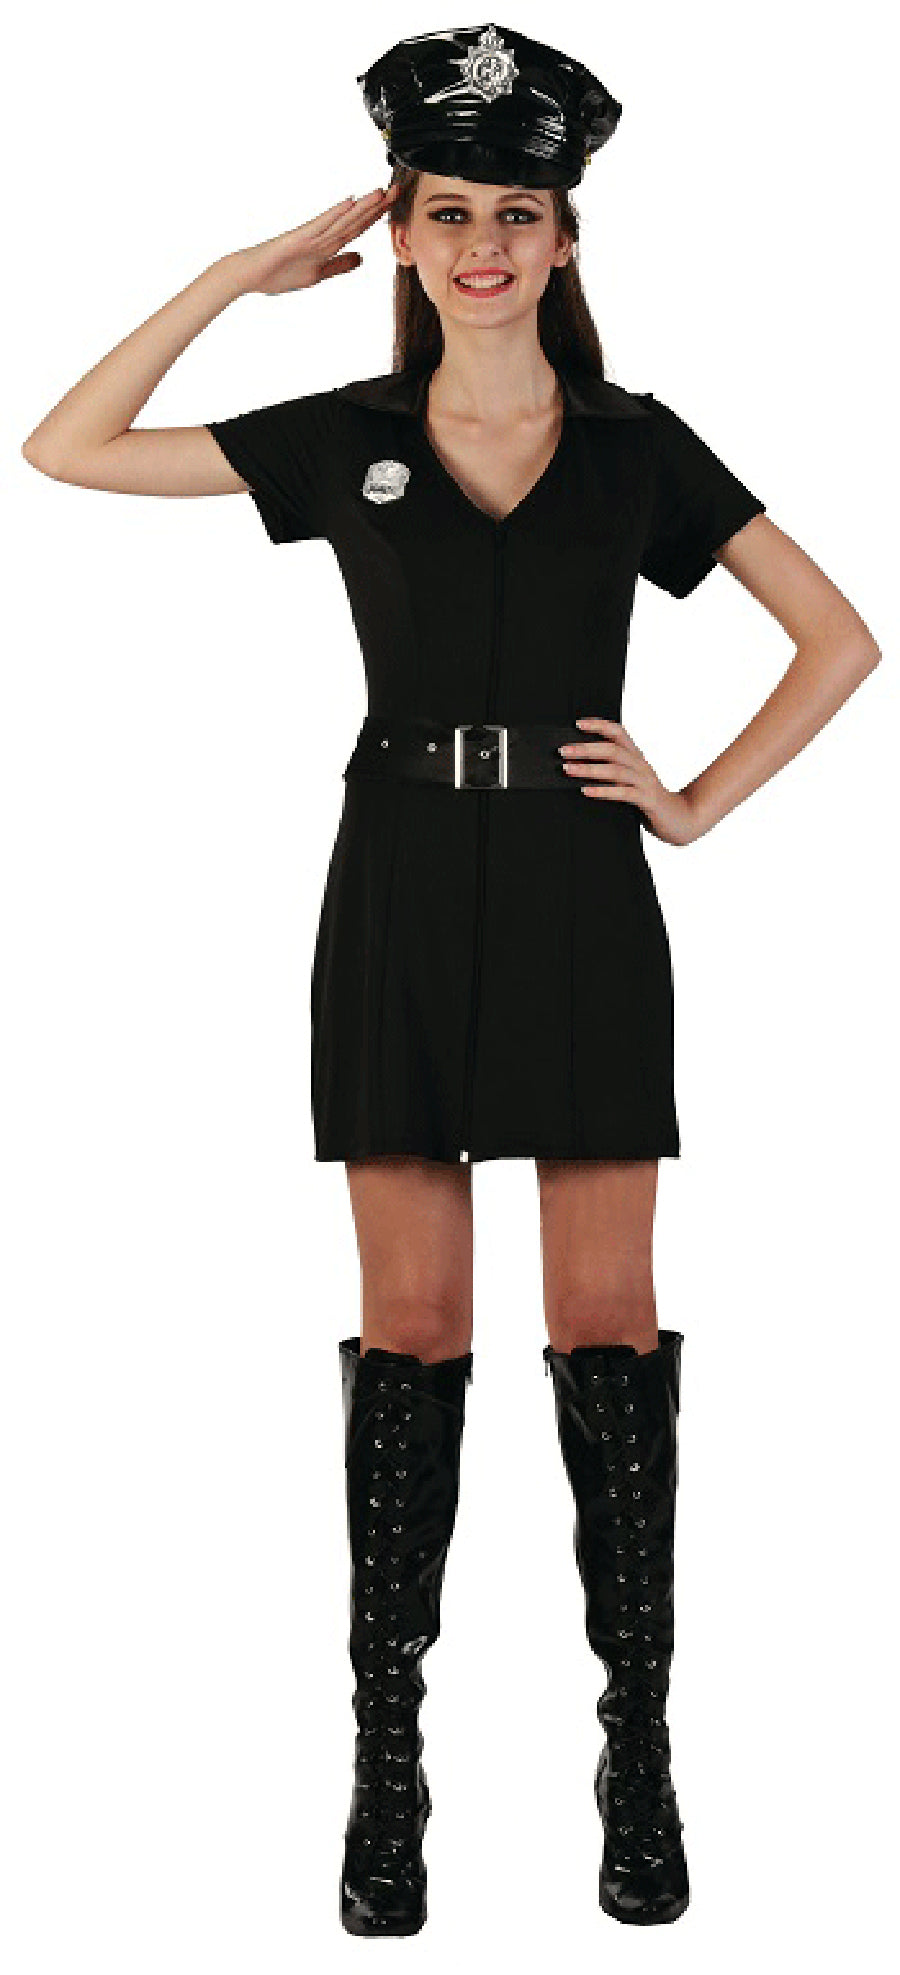 Police Woman Costume - Buy